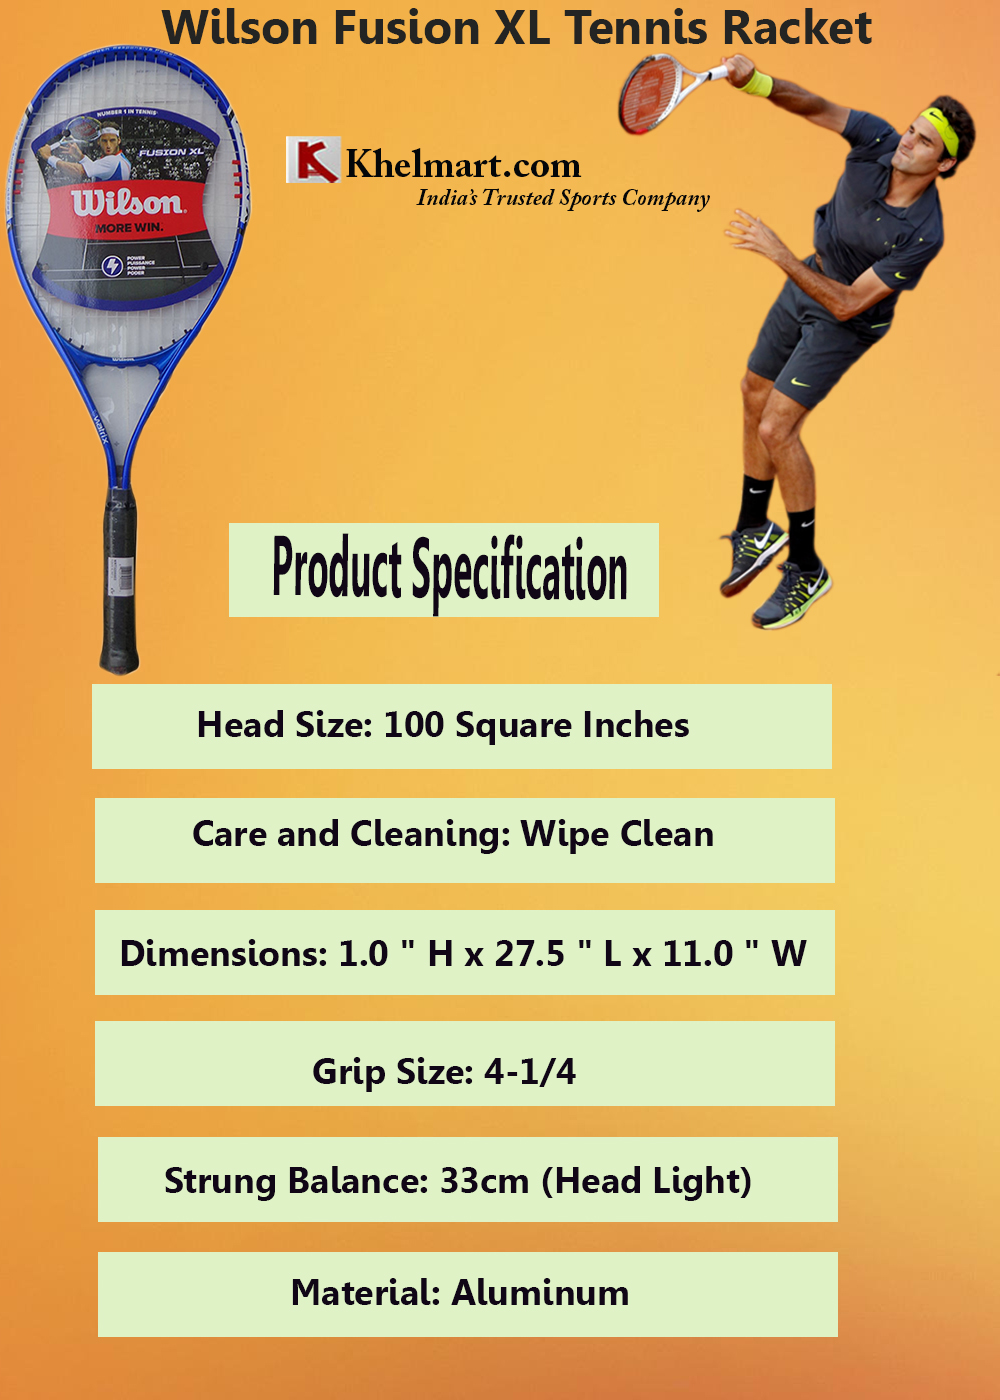 Specification of Wilson Fusion XL tennis racket